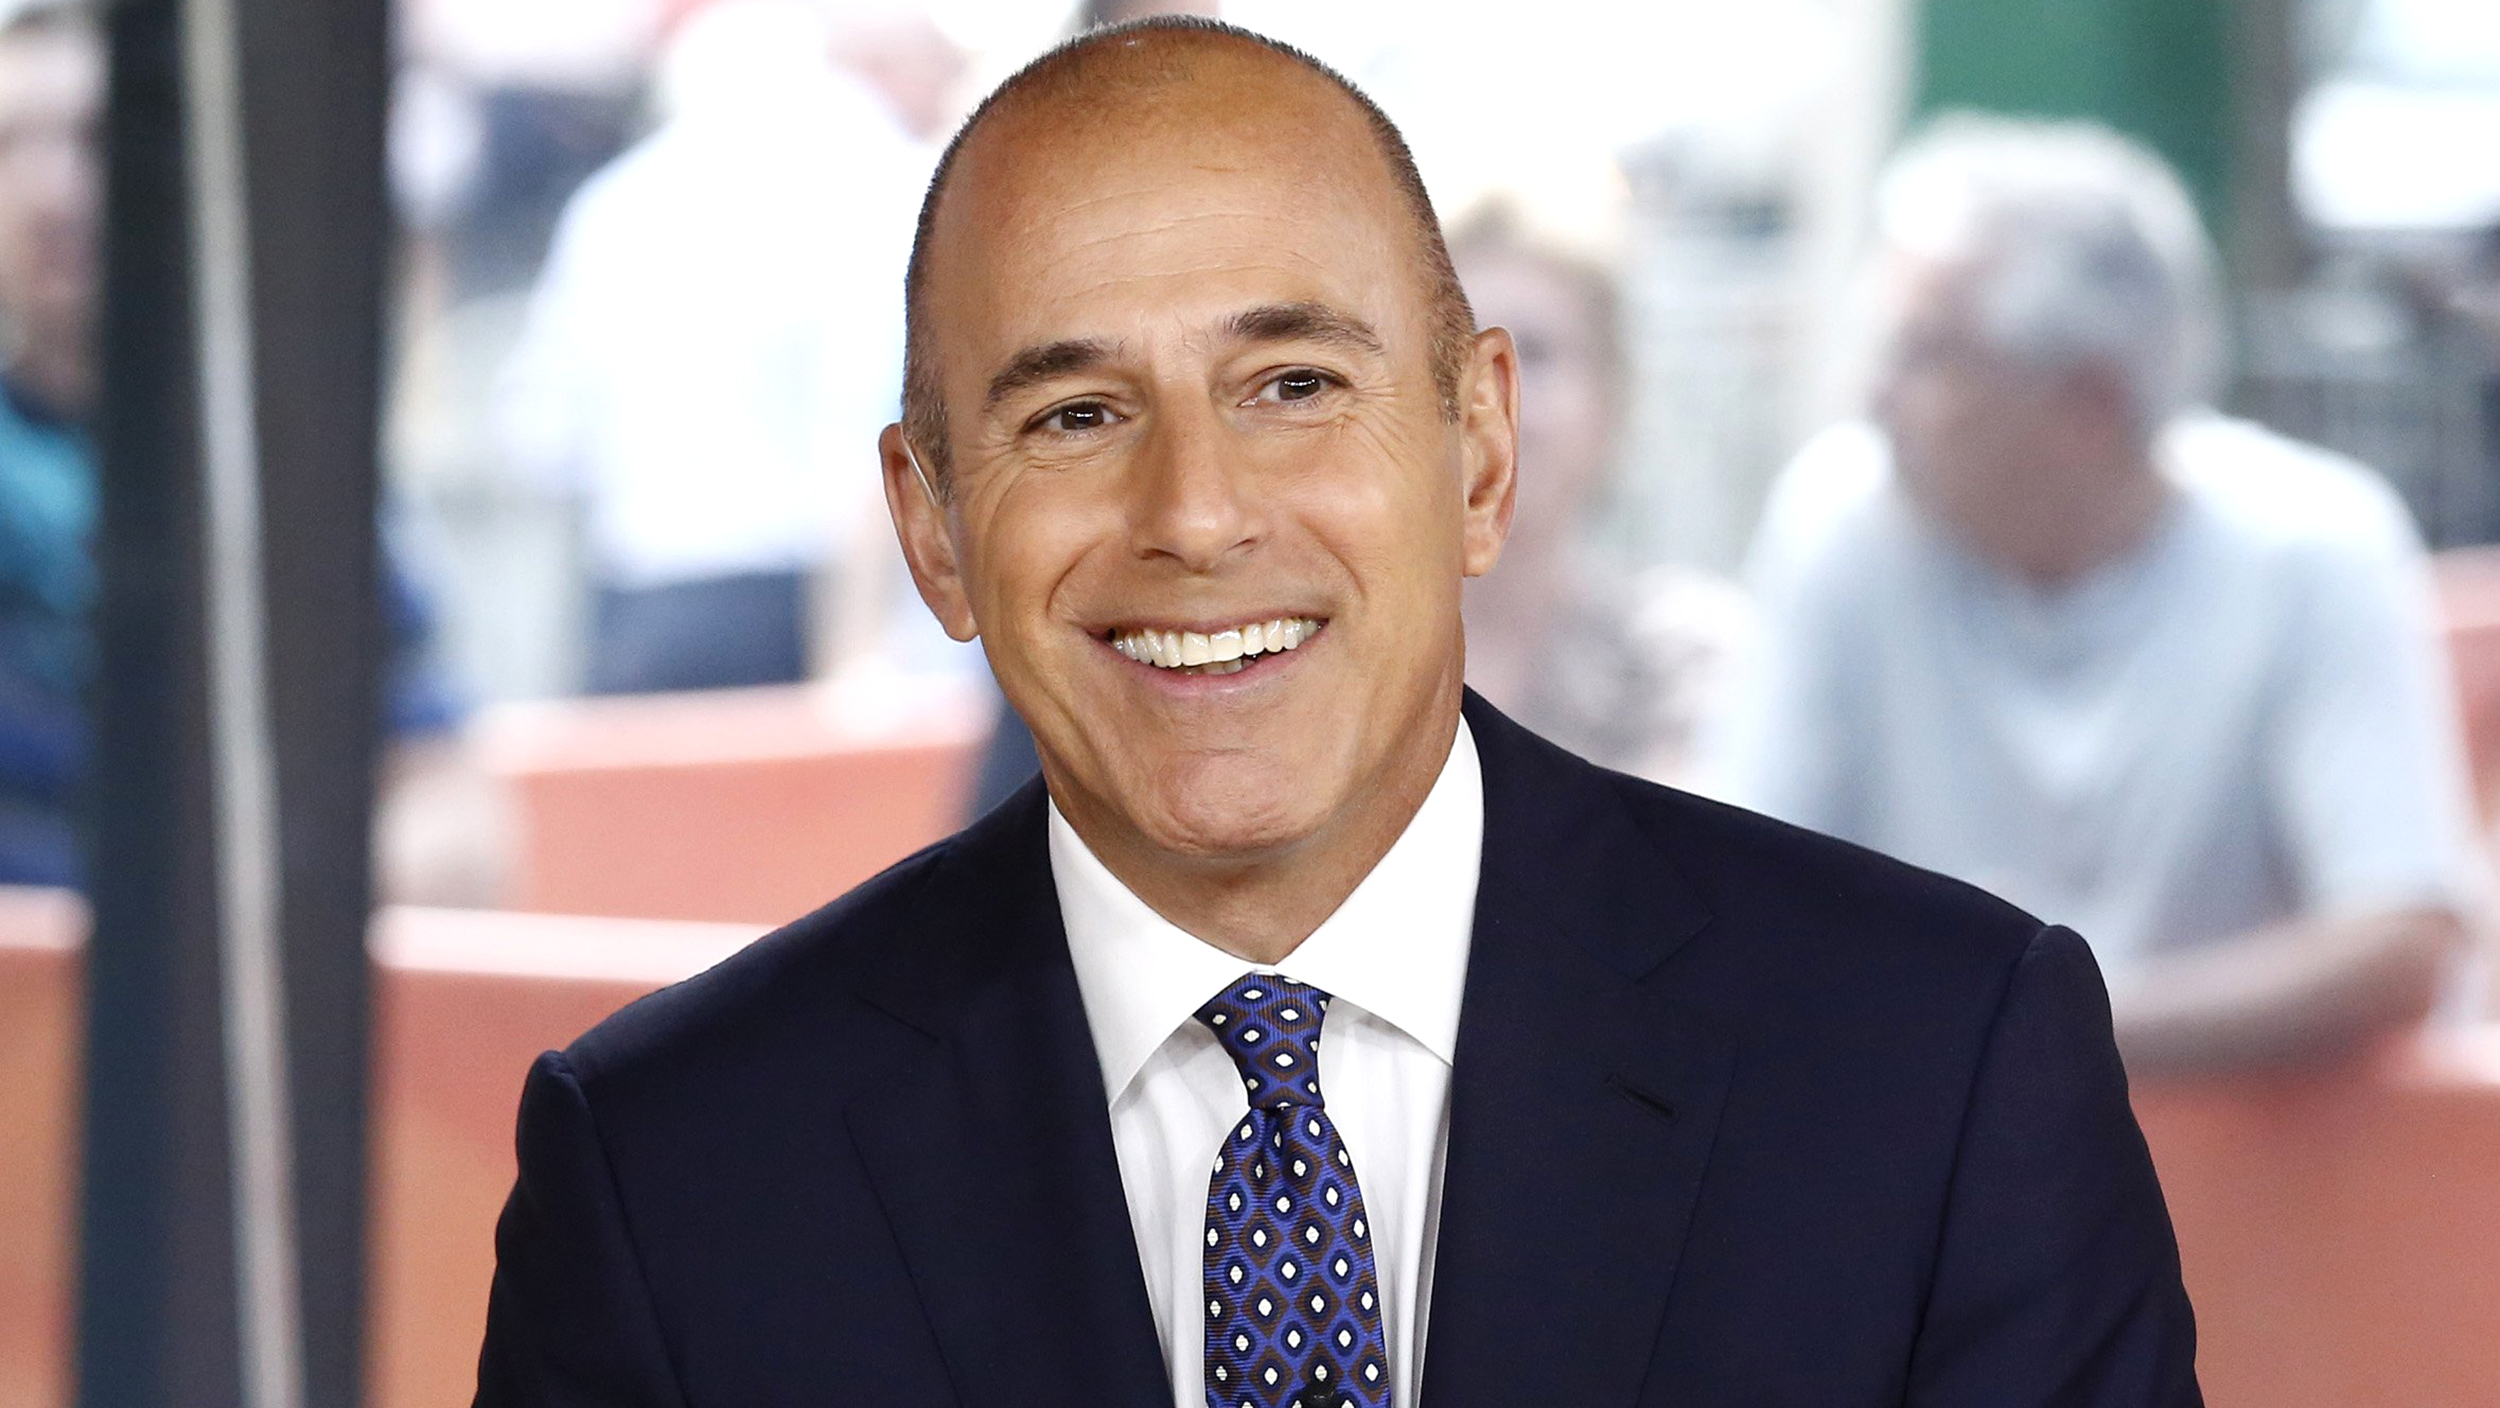 Creepy On Air Moment Matt Lauer Told Actress He Had Nude Photo Of